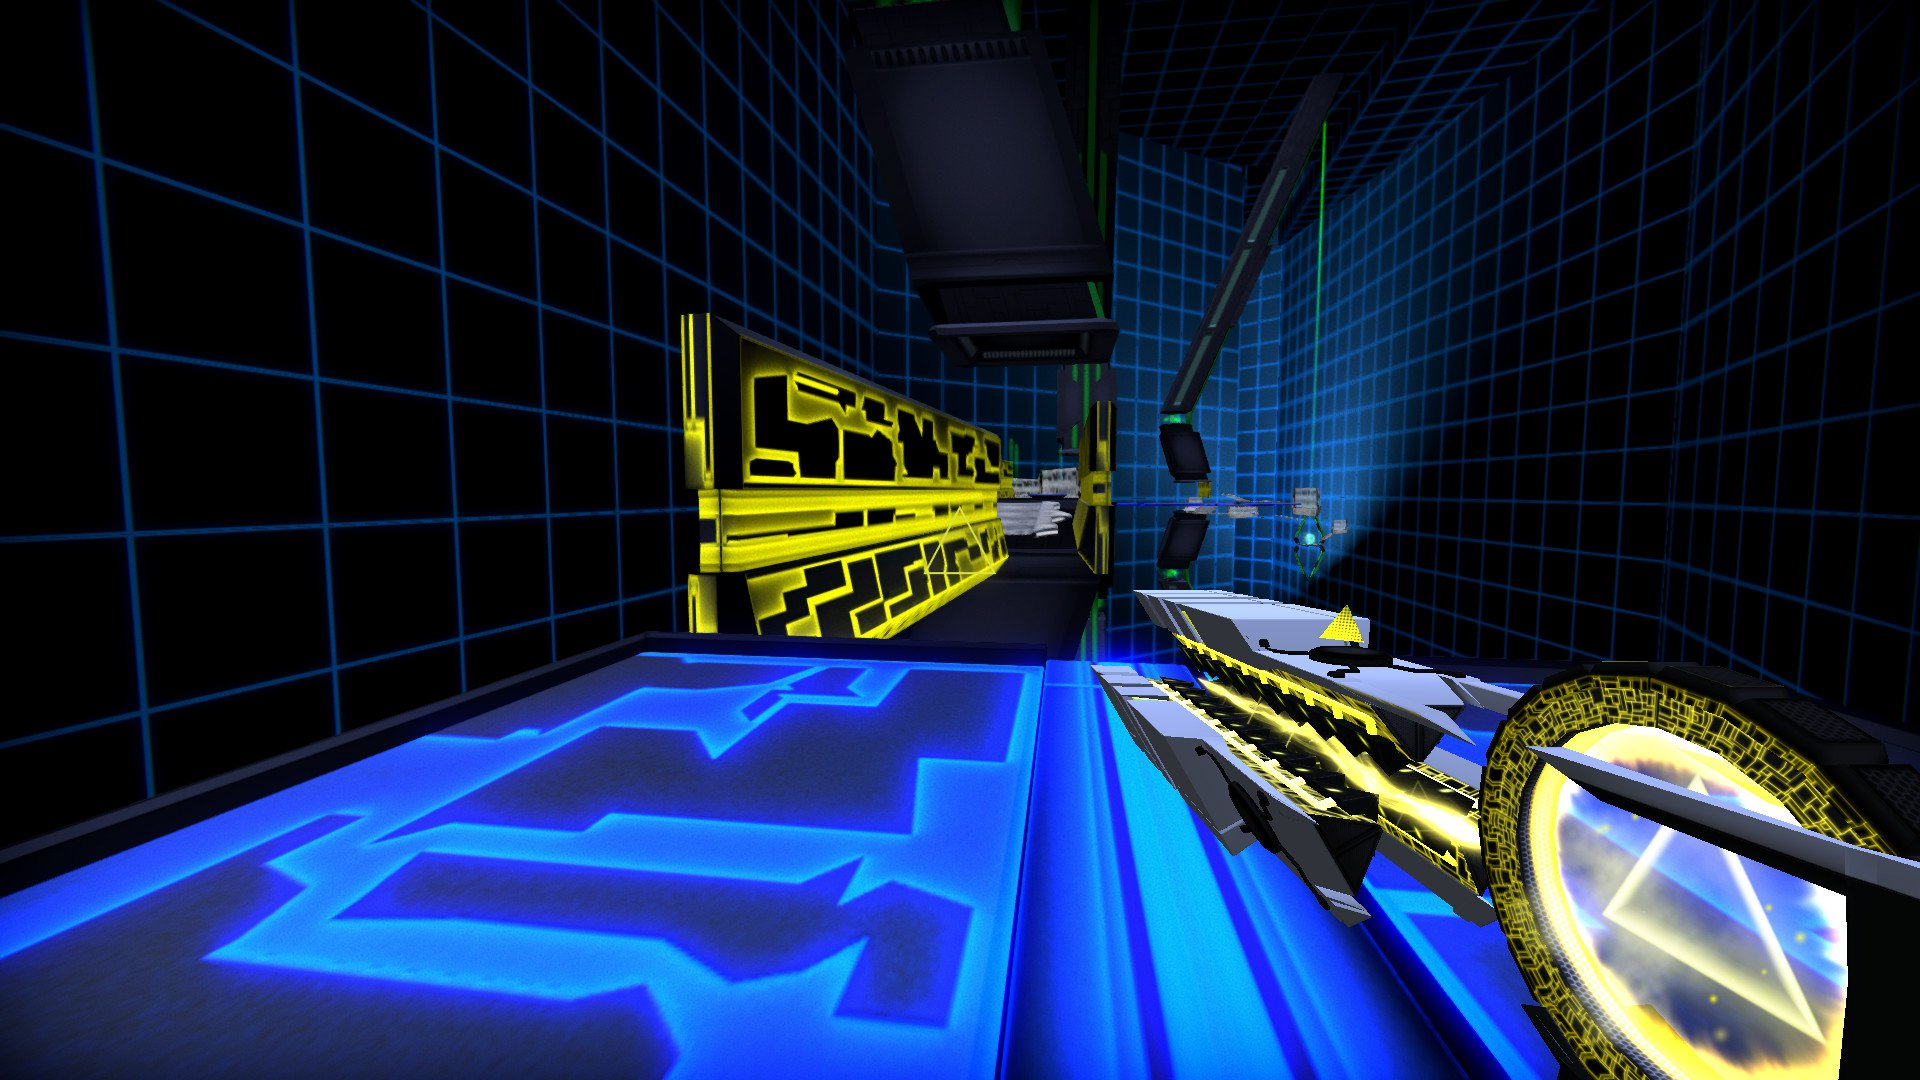 Screenshot 1 from 'Chromalocity' by Wrecked Angle student team